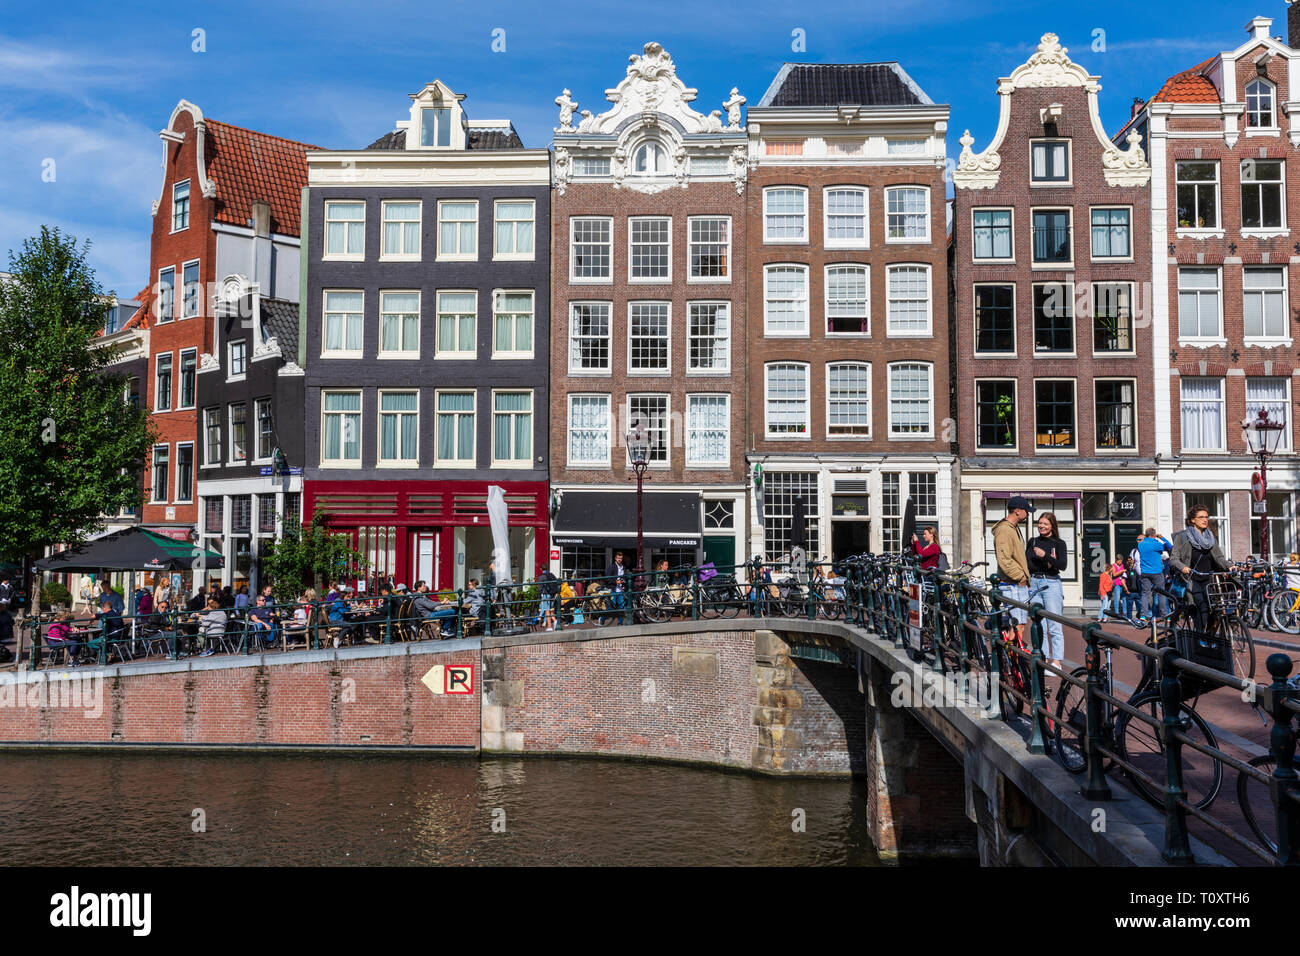 Typical Dutch houses, cafes and shops along the Prinsengracht Canal in Amsterdam, The Netherlands. - Stock Image